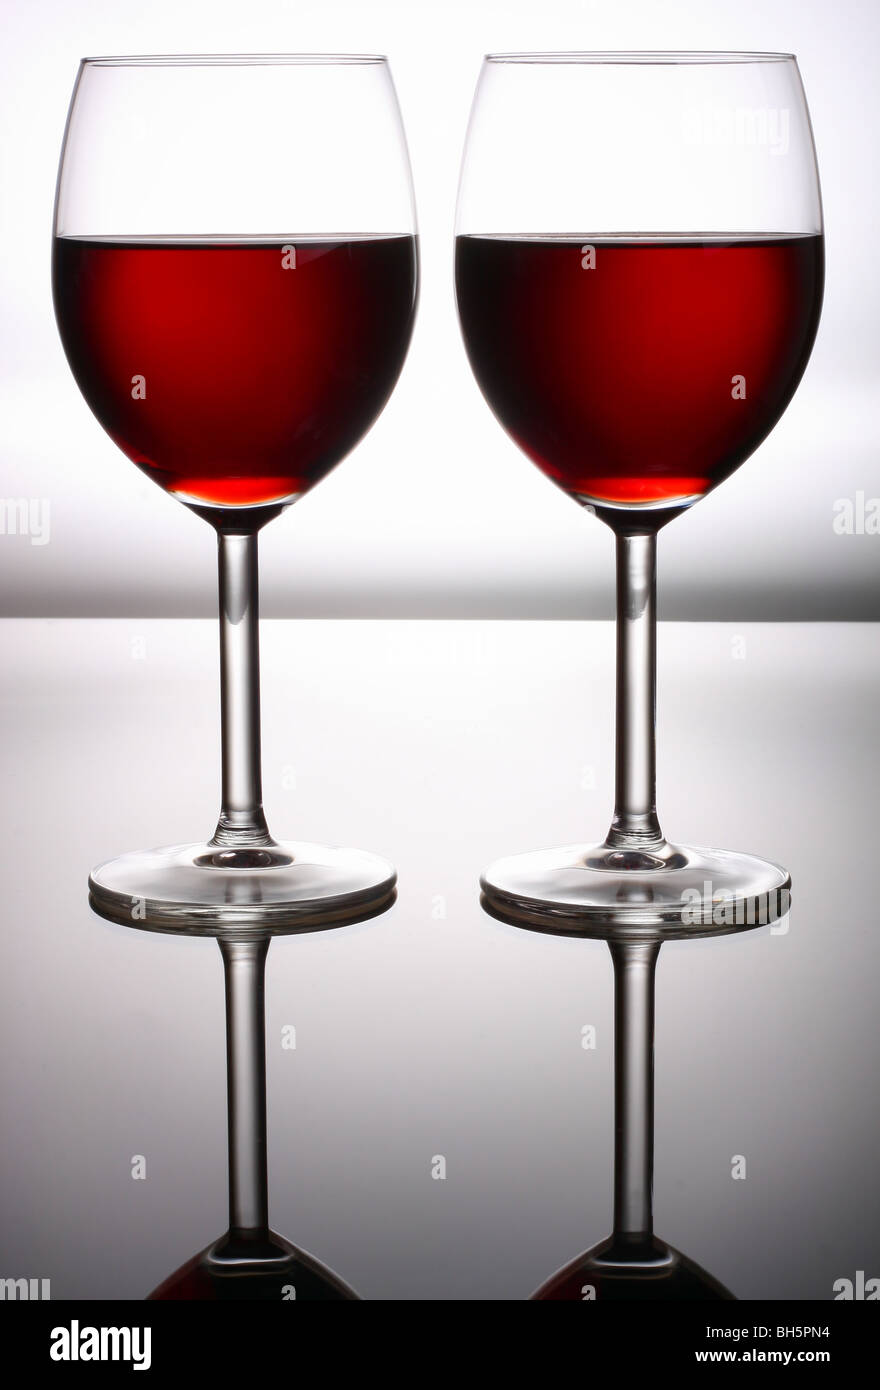 Verre de vin rouge Photo Stock